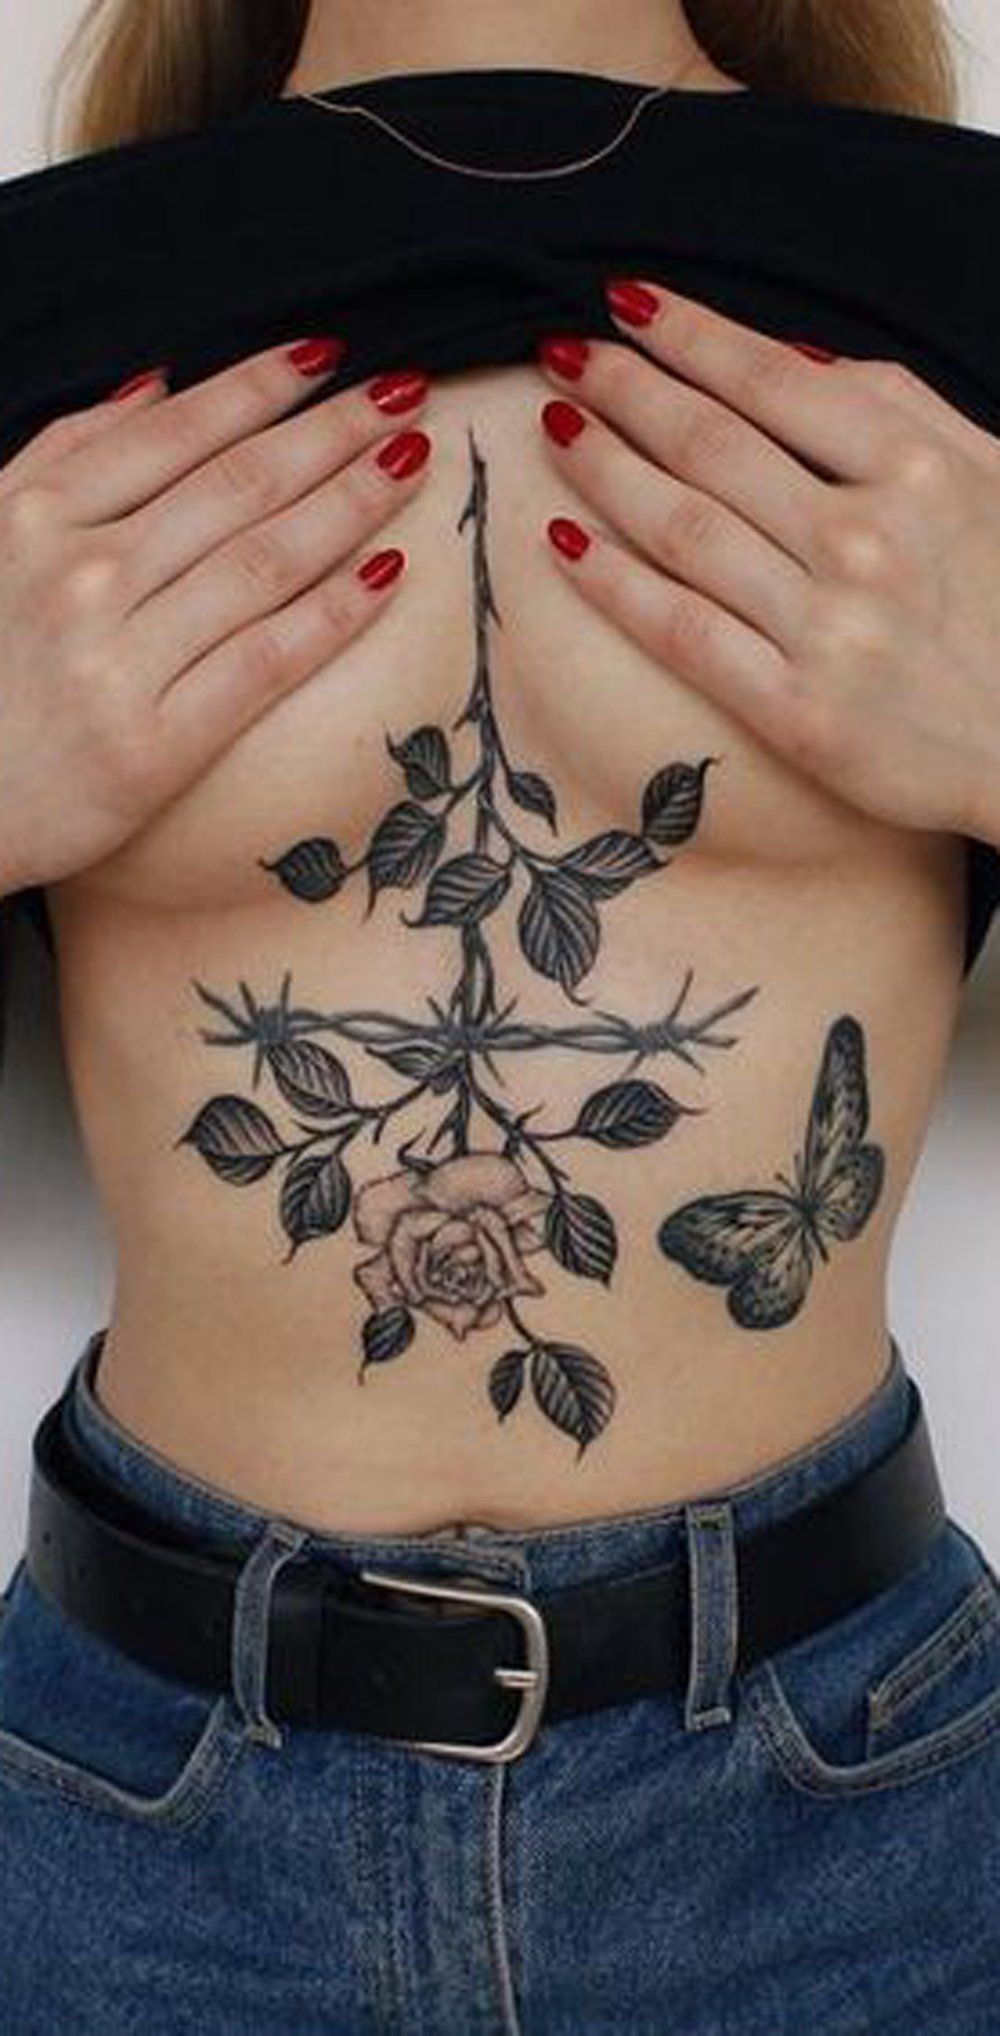 Chest to arm tattoo ideas realistic large rose sternum tattoo ideas for women  nature leaf